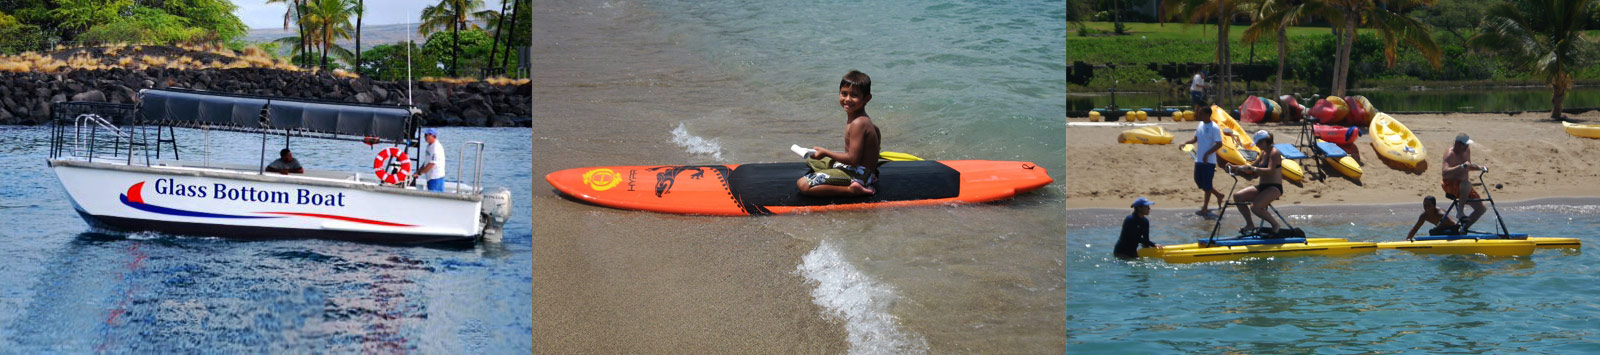 Aloha Days with Hawaii Ocean Sports - Discounts and Adventure!